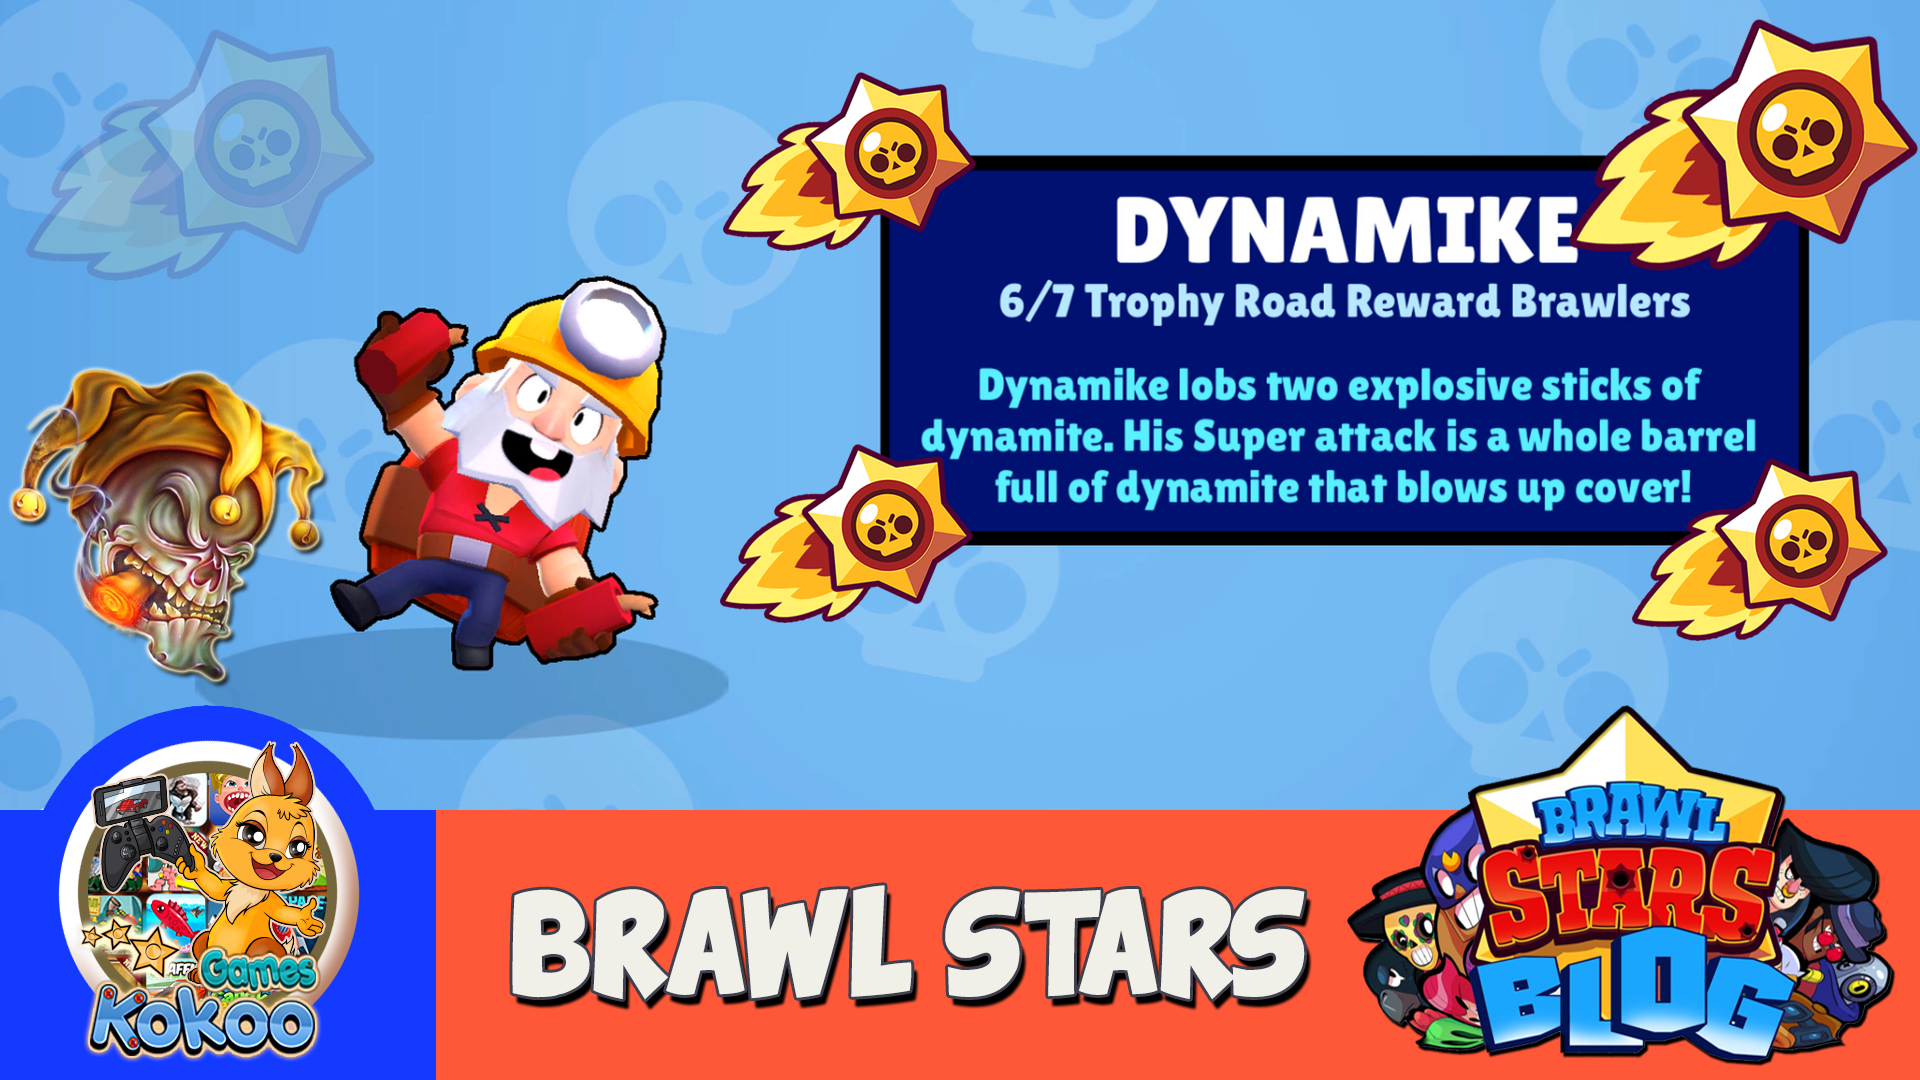 BRAWL STARS PART 9 I HAVE A NEW BRAWLER DYNAMIKE